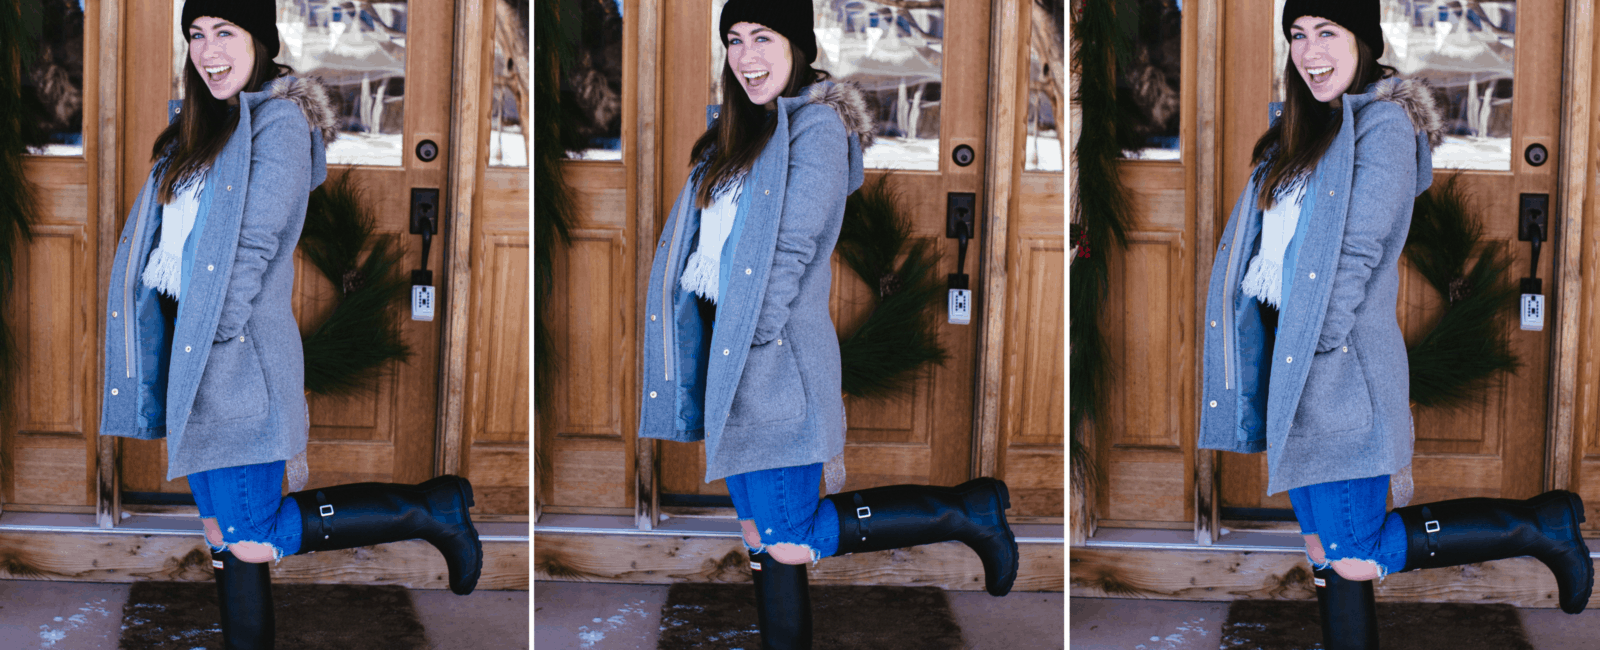 How To Clean Hunter Boots With One Simple Ingredient